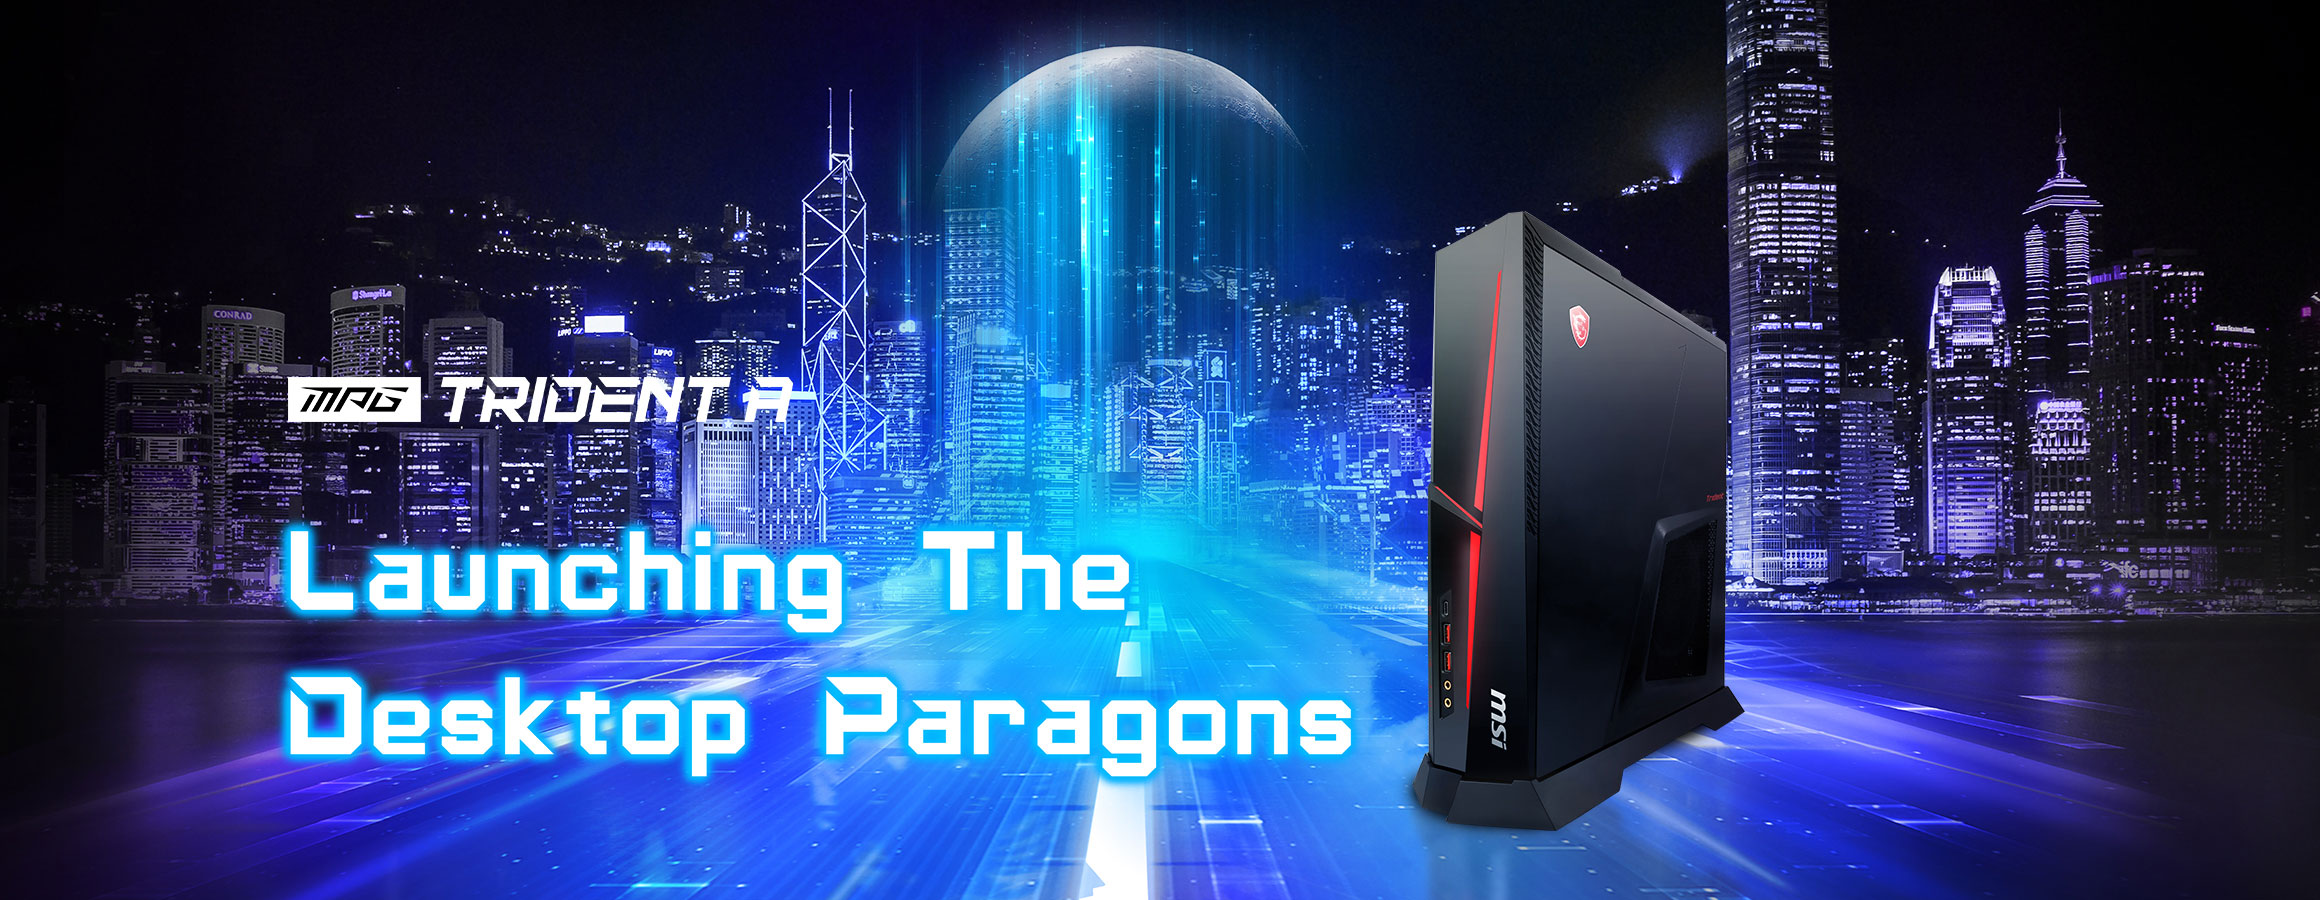 The Centerpiece of Gaming - MPG Trident A